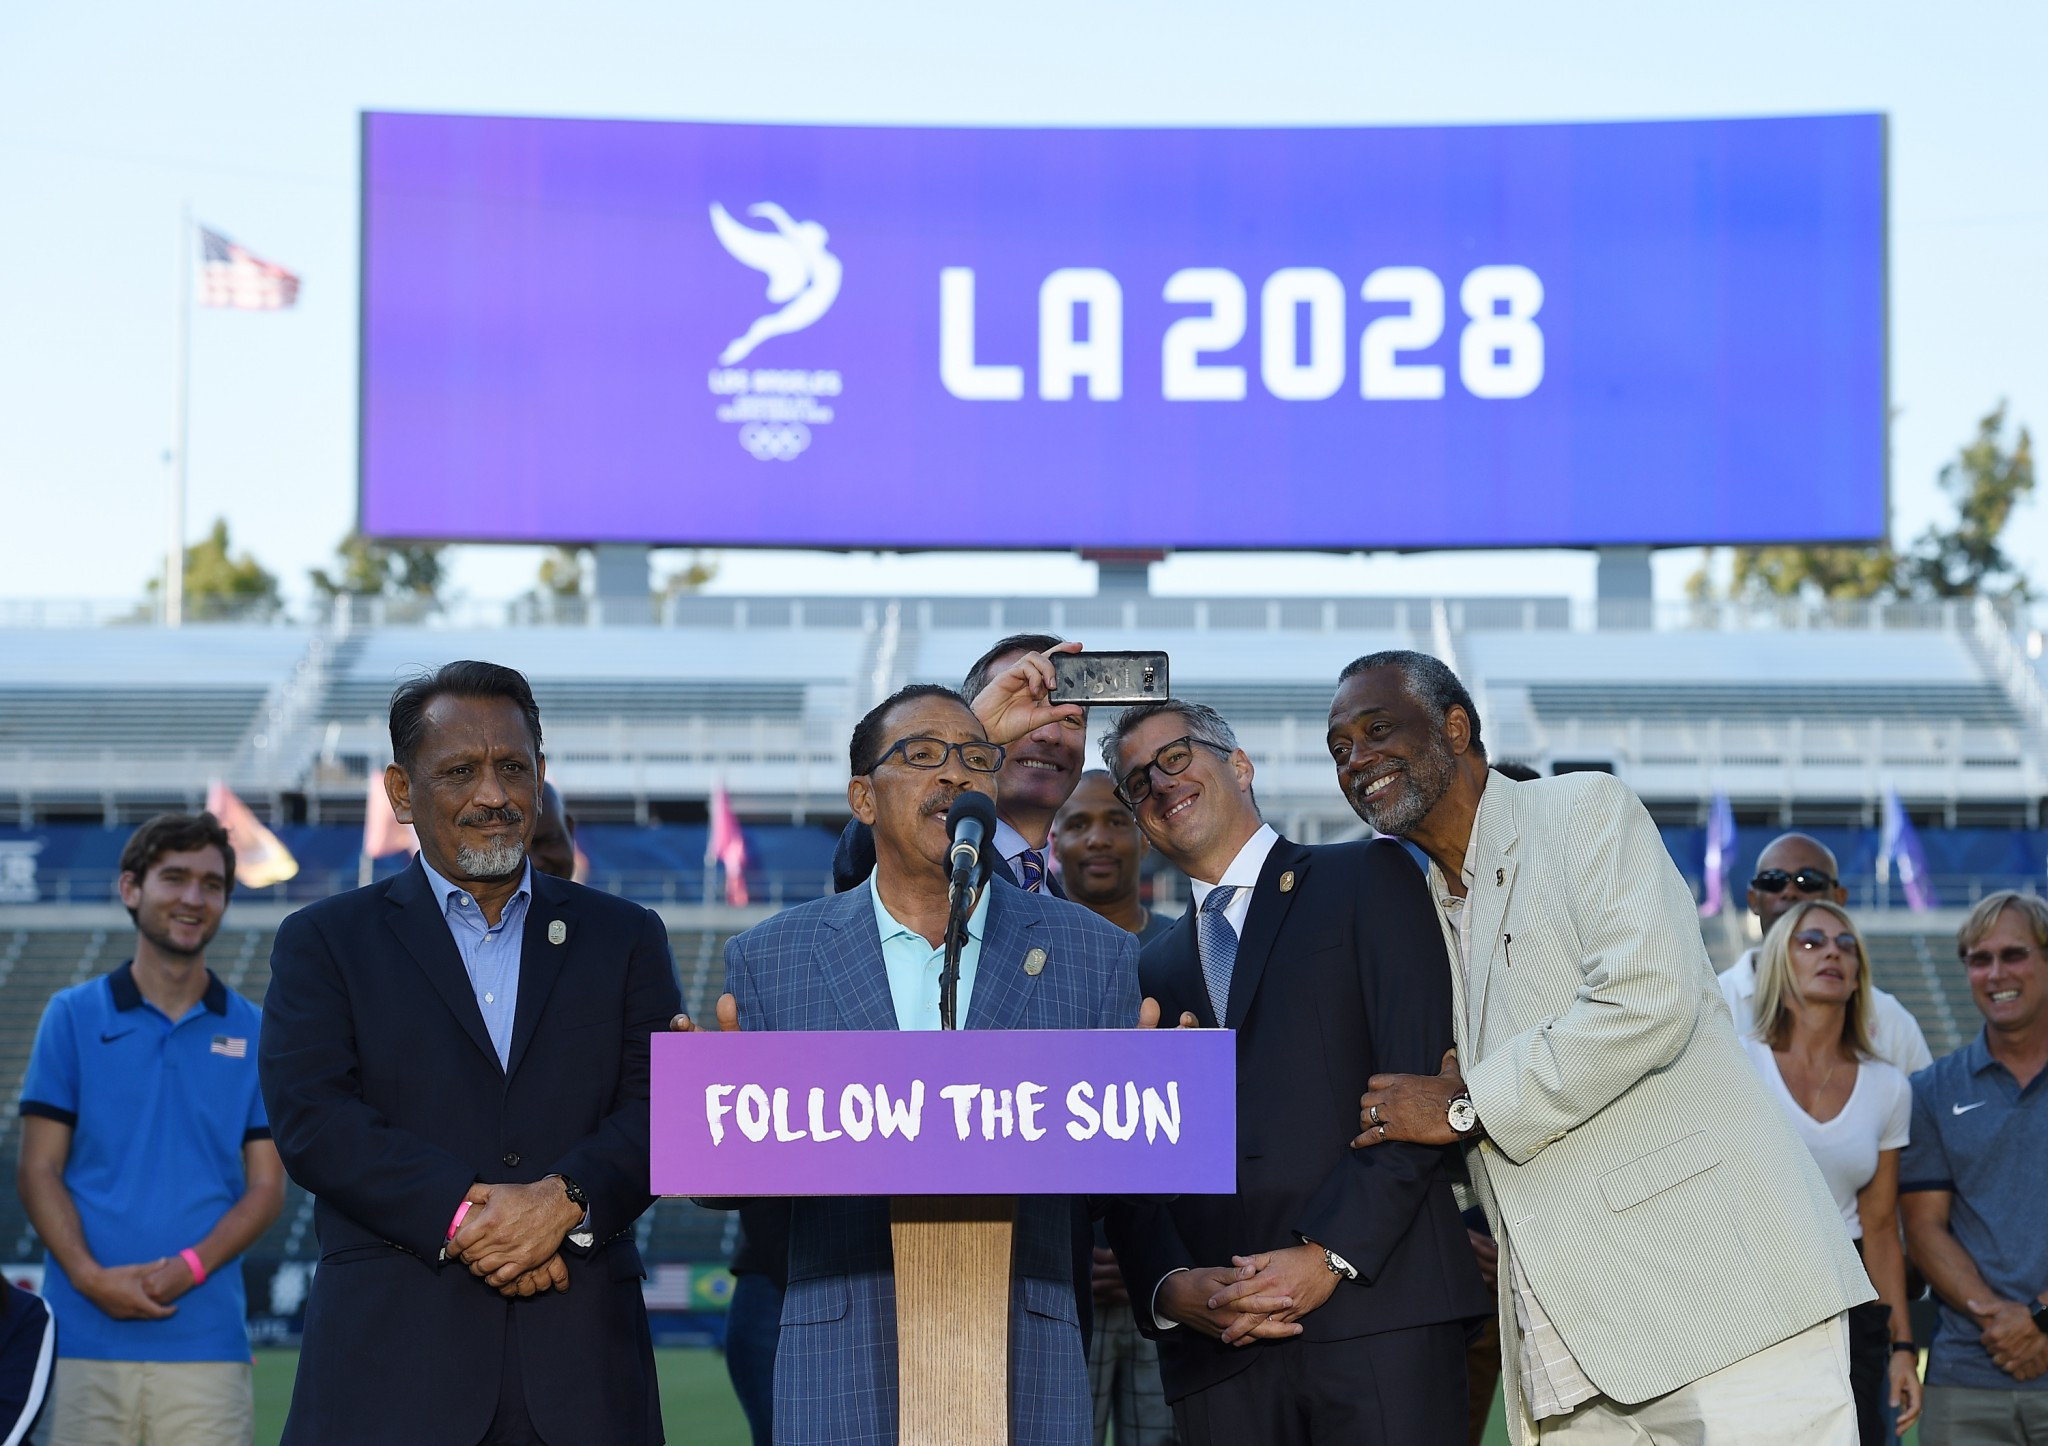 California State Government promise financial backing for Los Angeles 2028